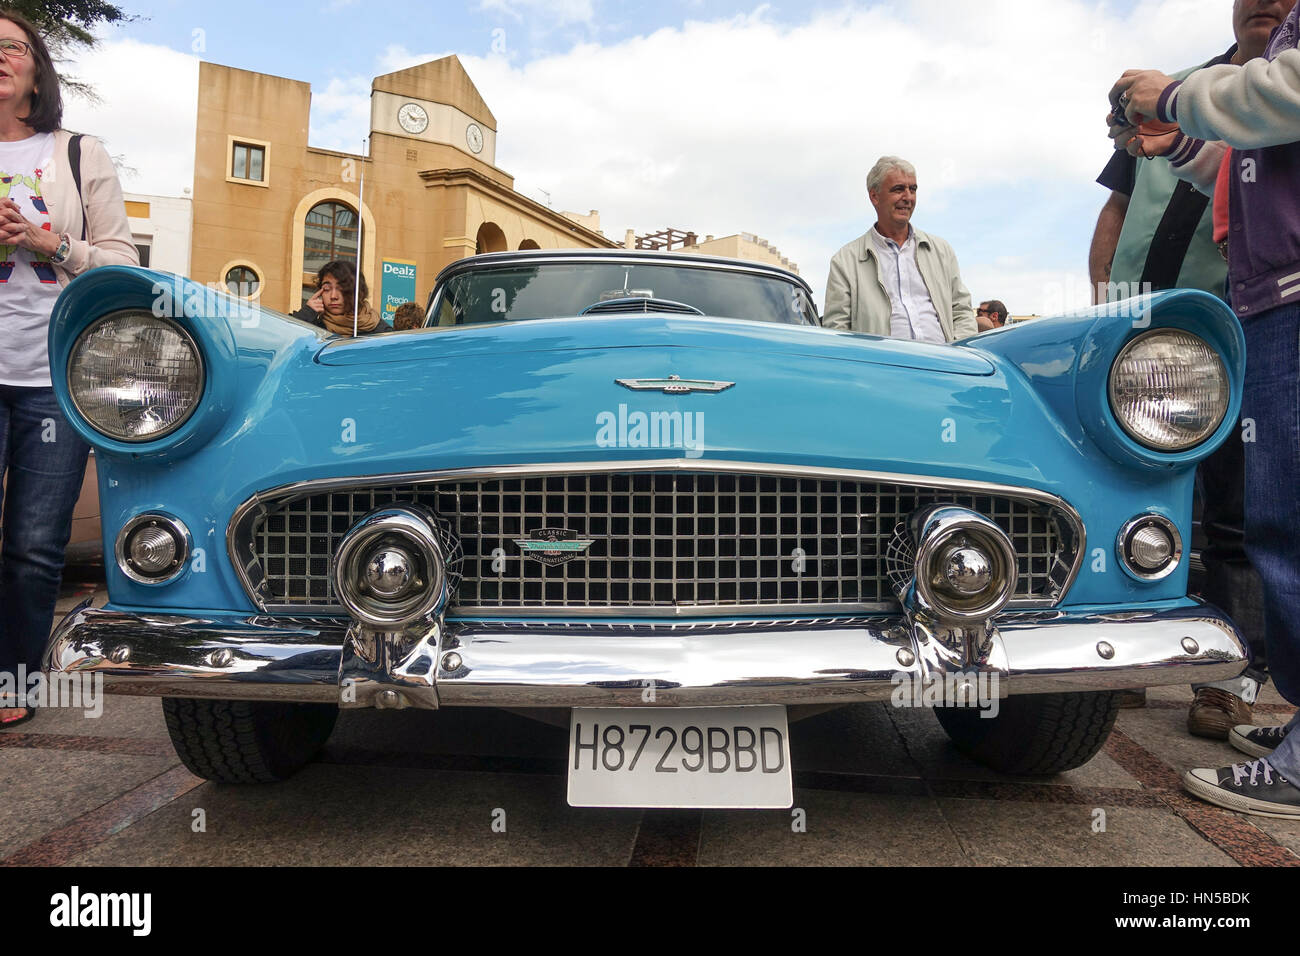 Classic Cars From The Fifties On Display At Rockabilly